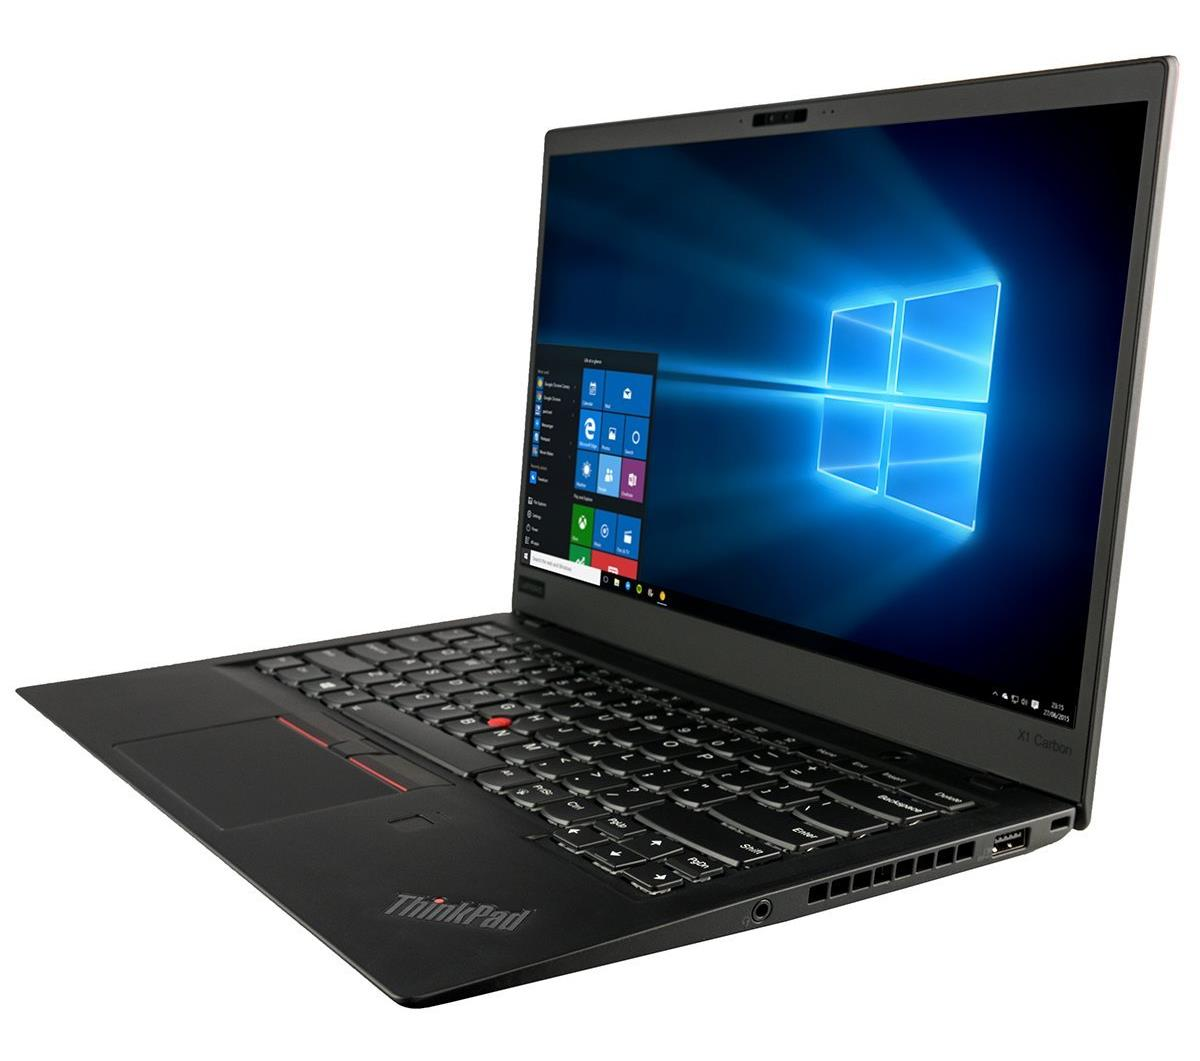 Lenovo ThinkPad X1 Carbon (6th Gen) Thin & Light Premium